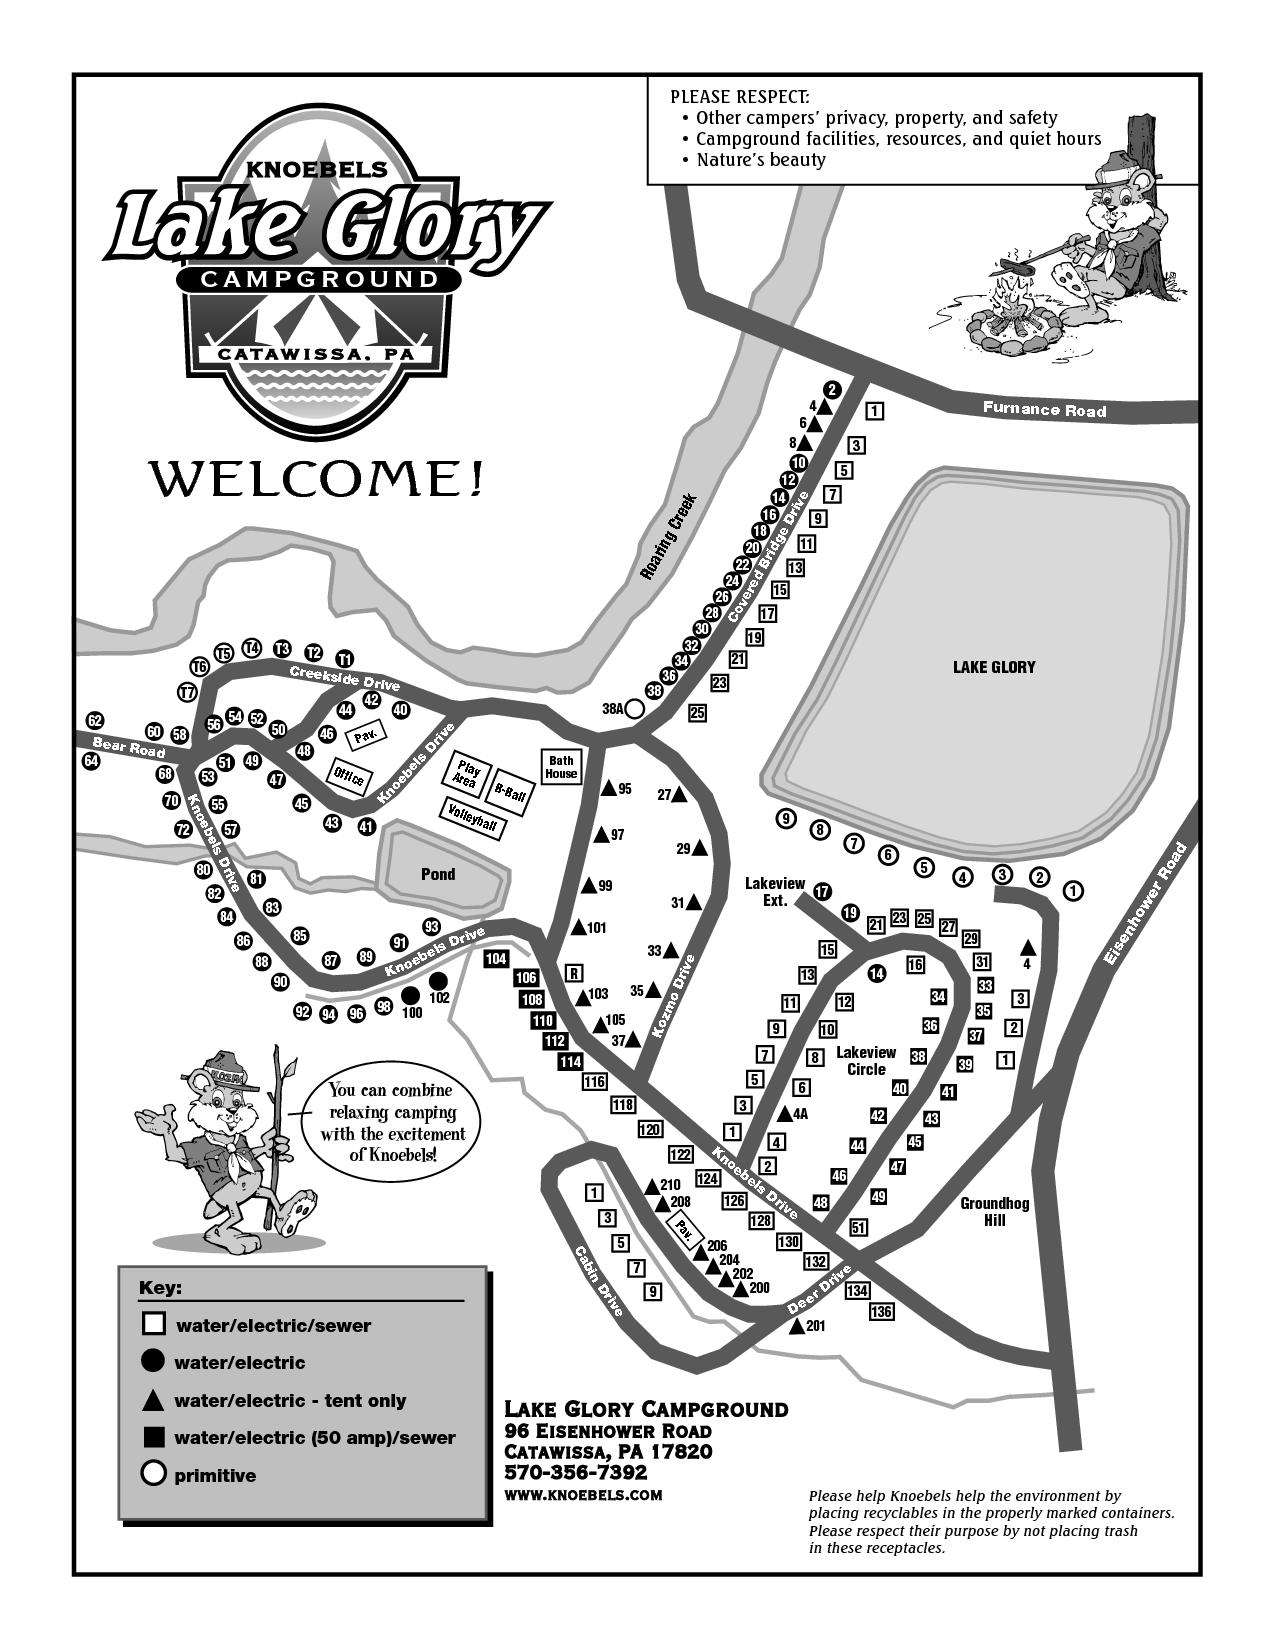 Knoebels Campground Map Lake Glory Knoebels | Hey I've Been There in 2019 | Campsite